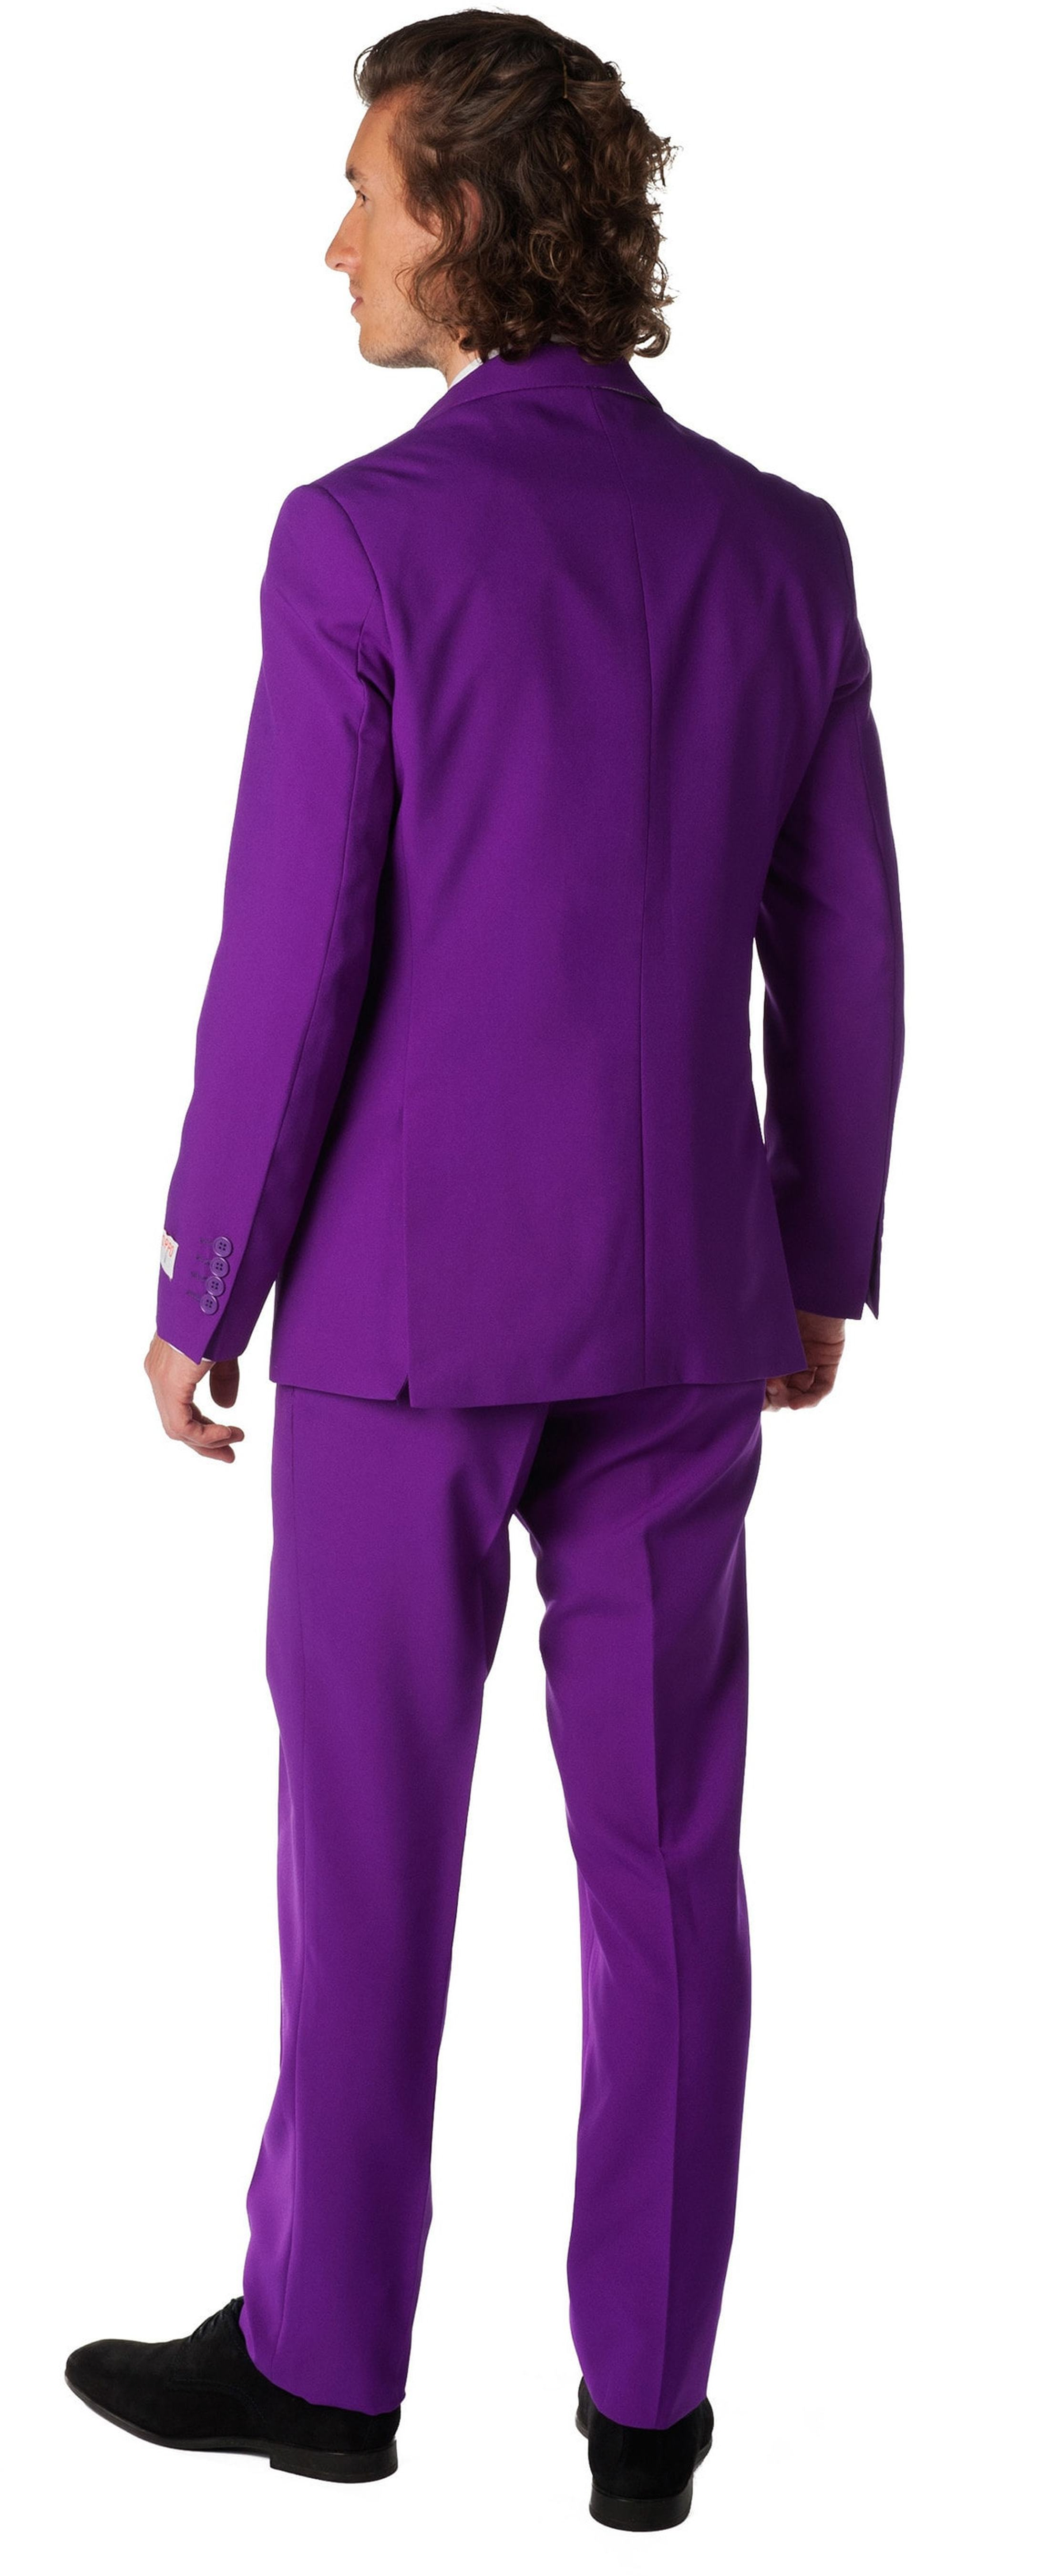 OppoSuits Purple Prince Suit